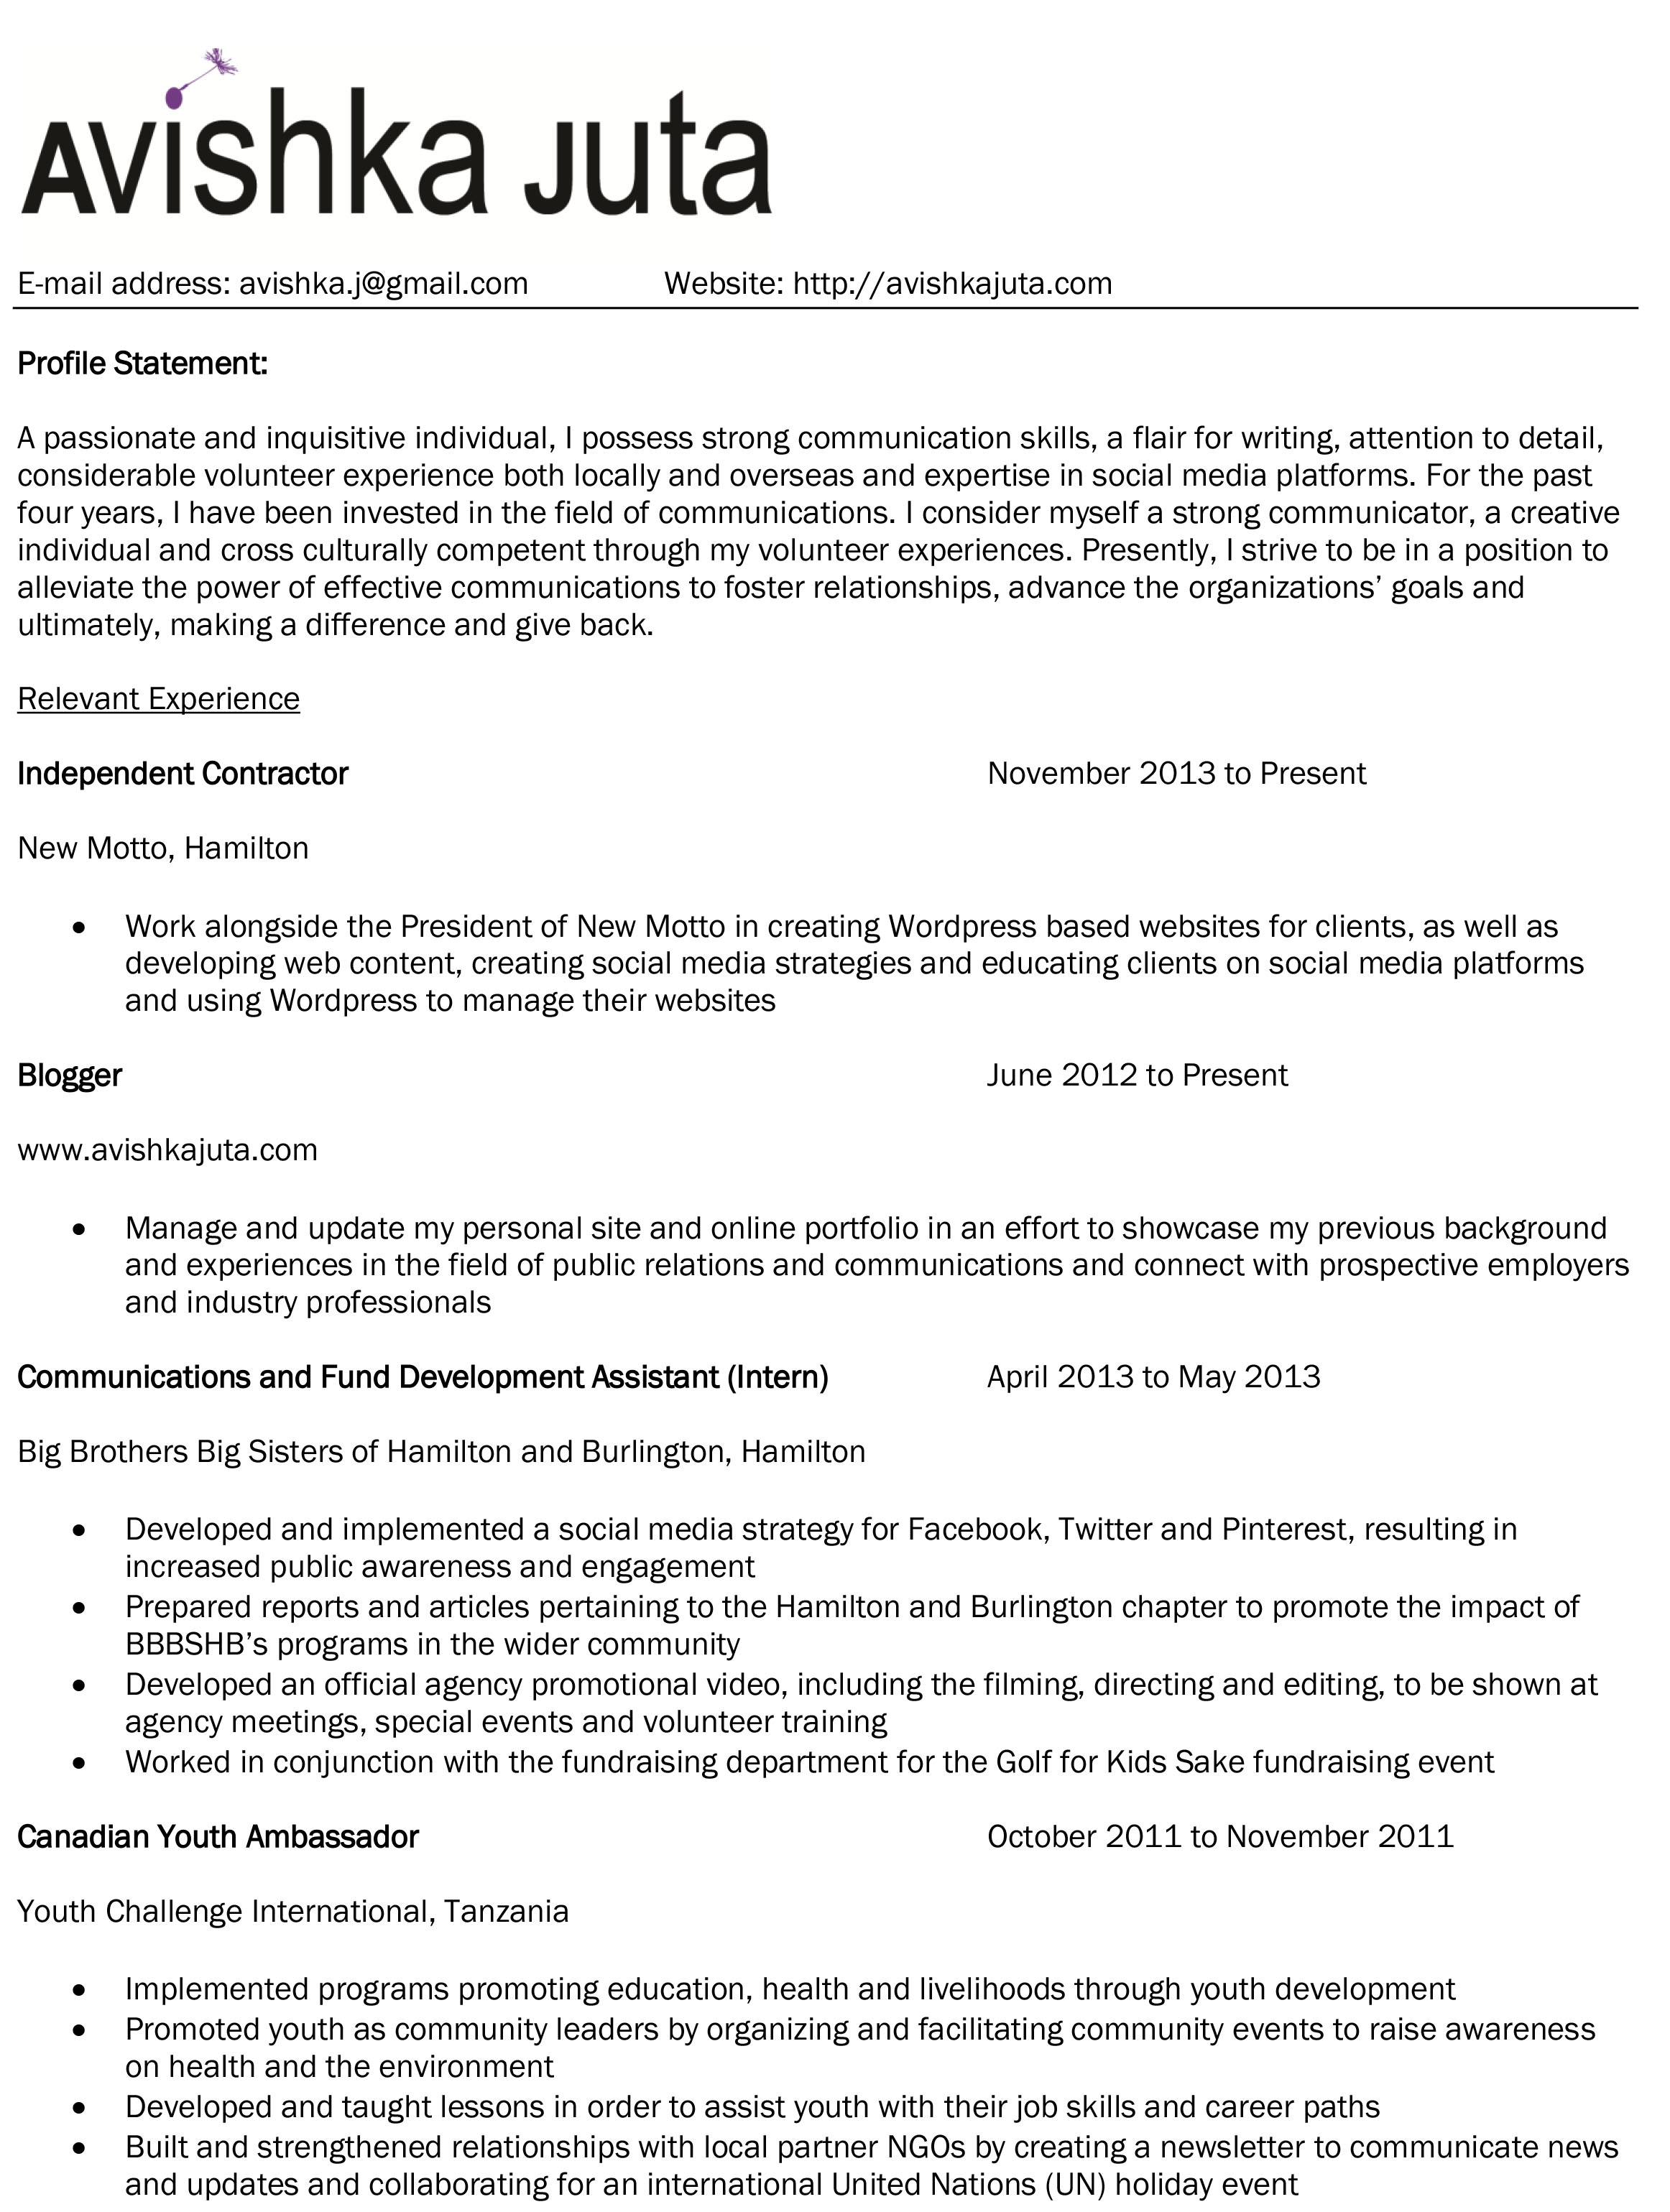 of expertise resume areas of expertise resume